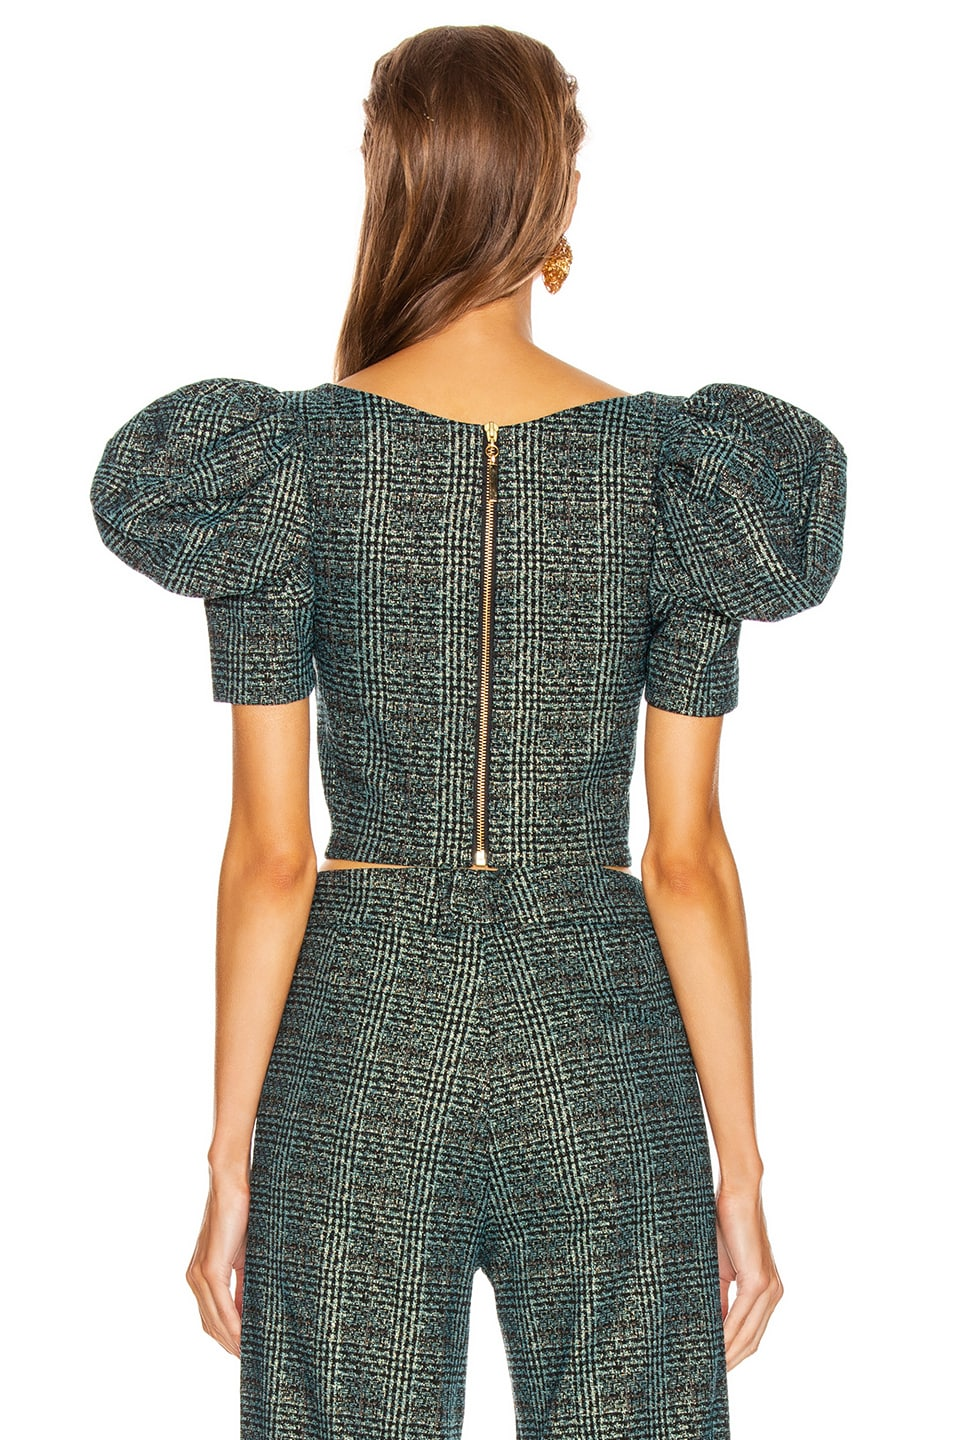 Image 3 of SILVIA TCHERASSI Darly Top in Teal Plaid